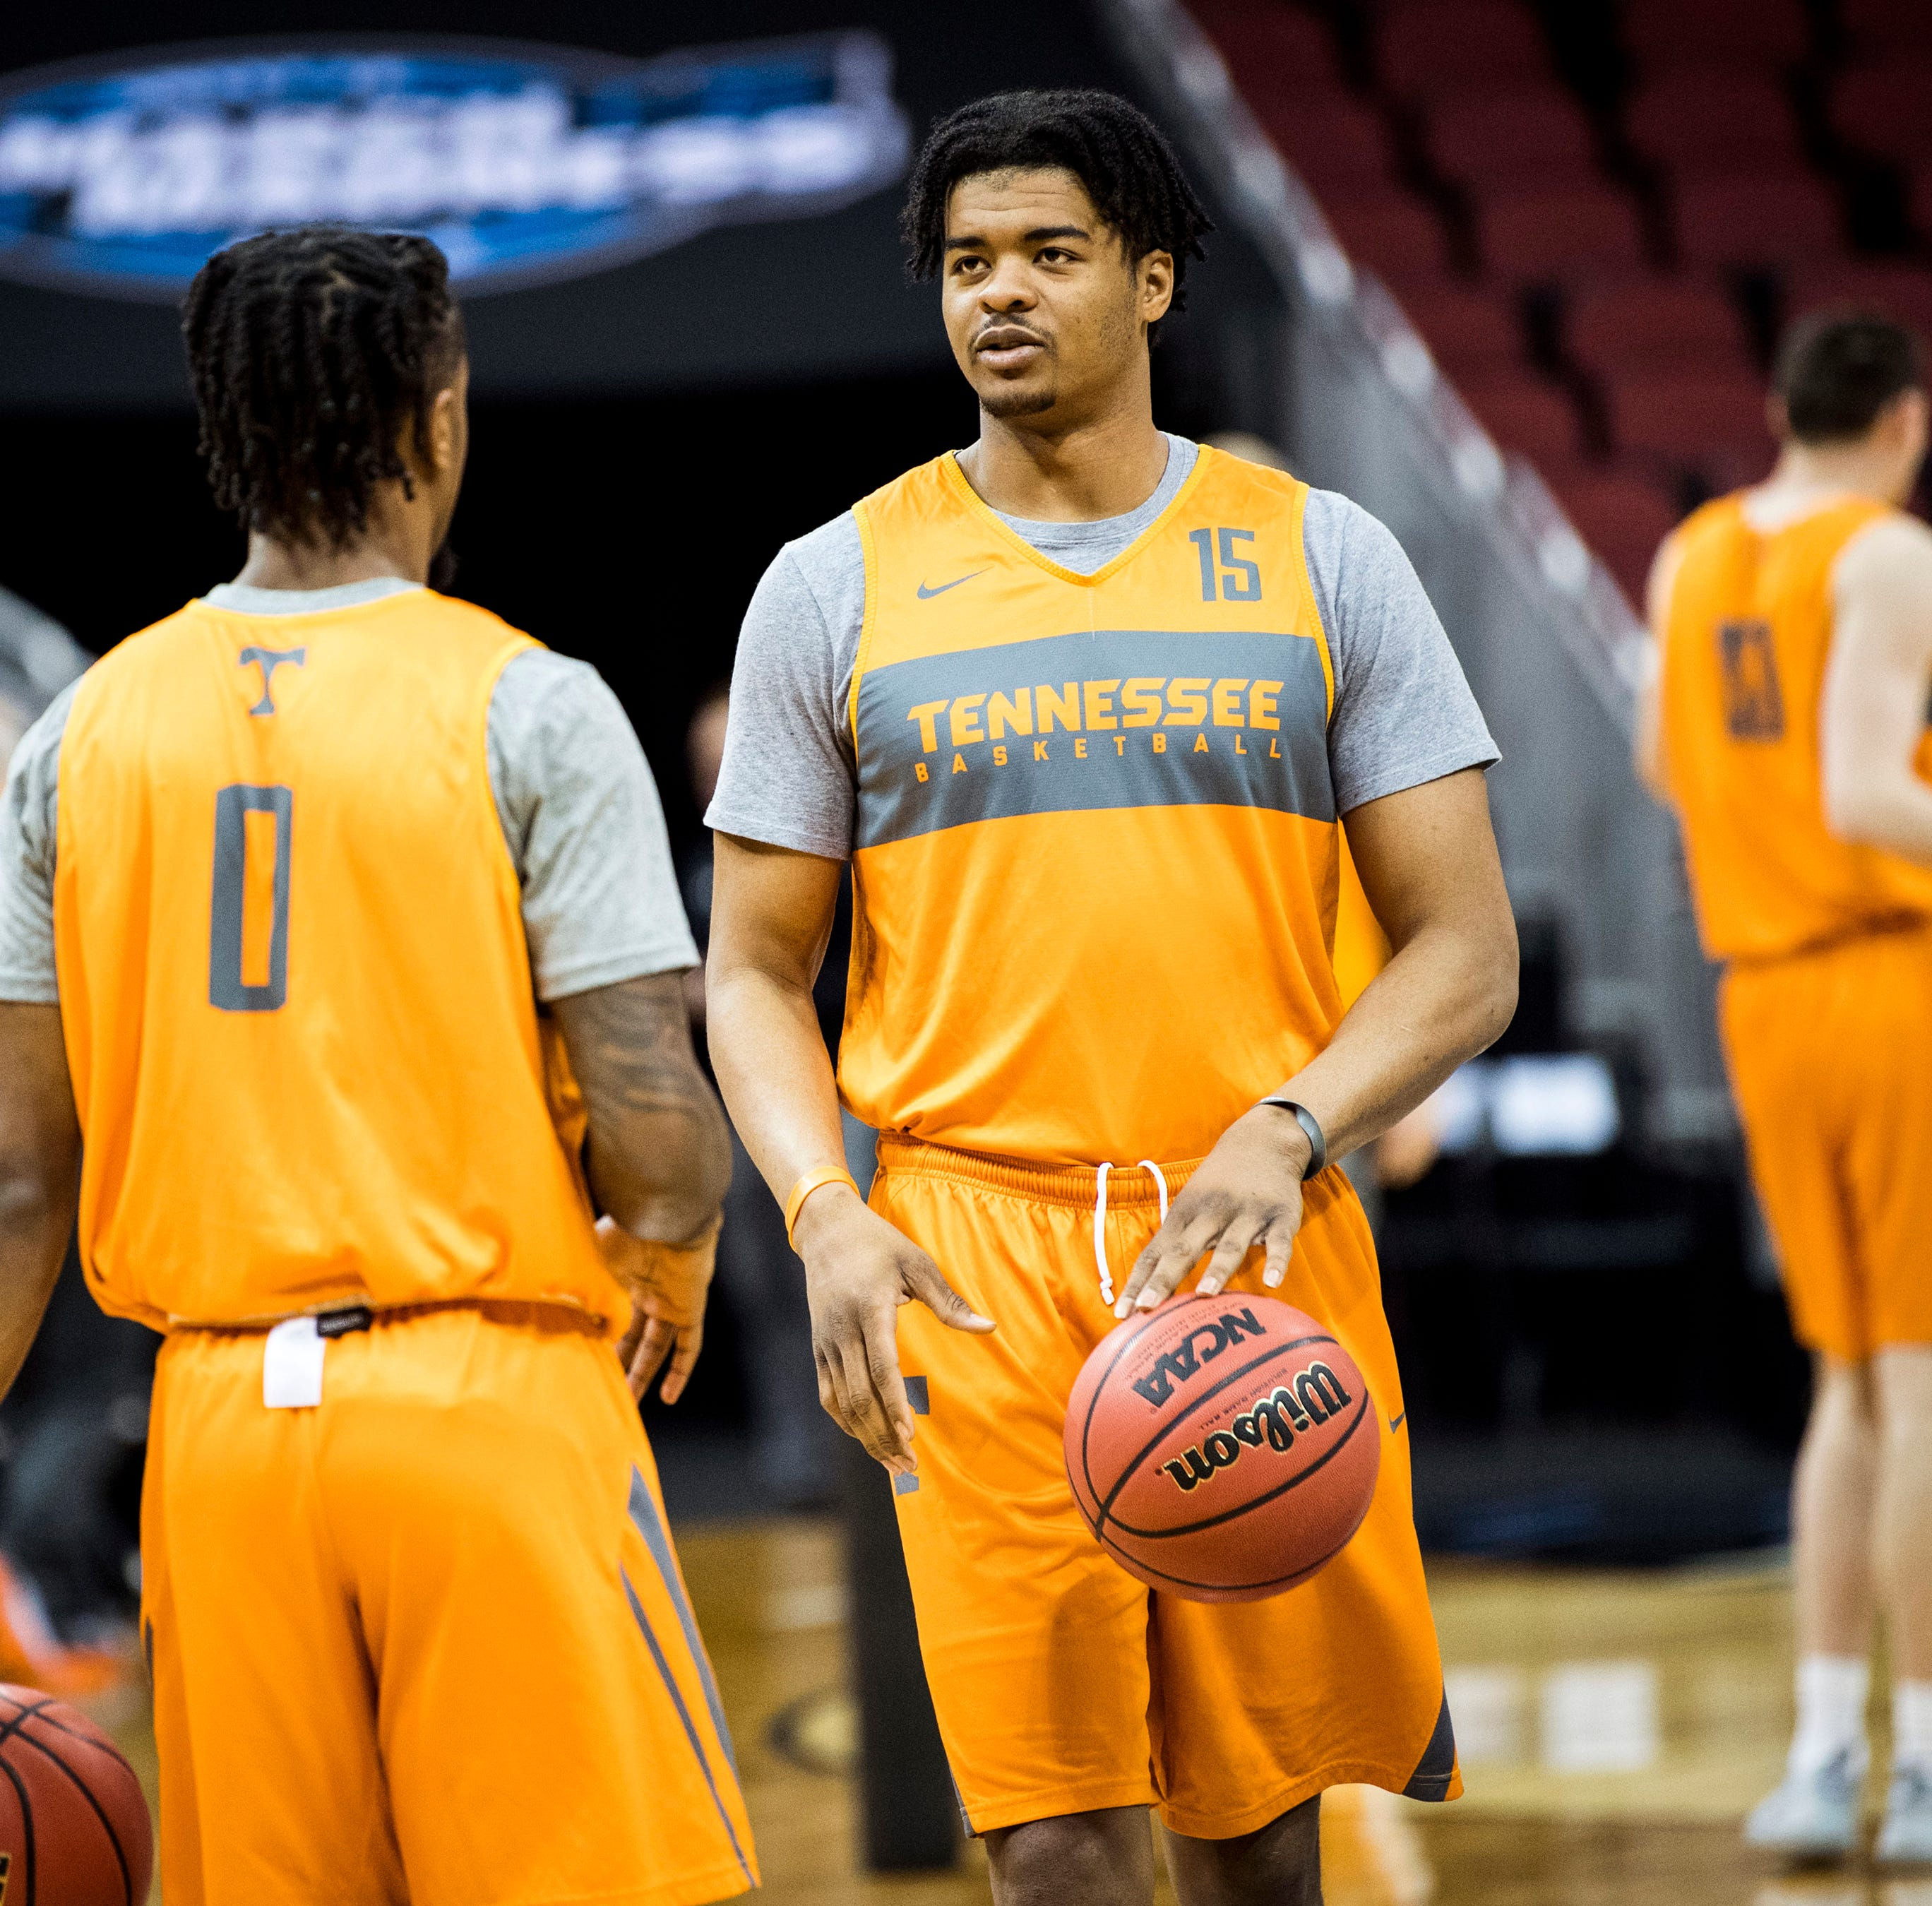 Tennessee basketball's Derrick Walker transfers to Nebraska